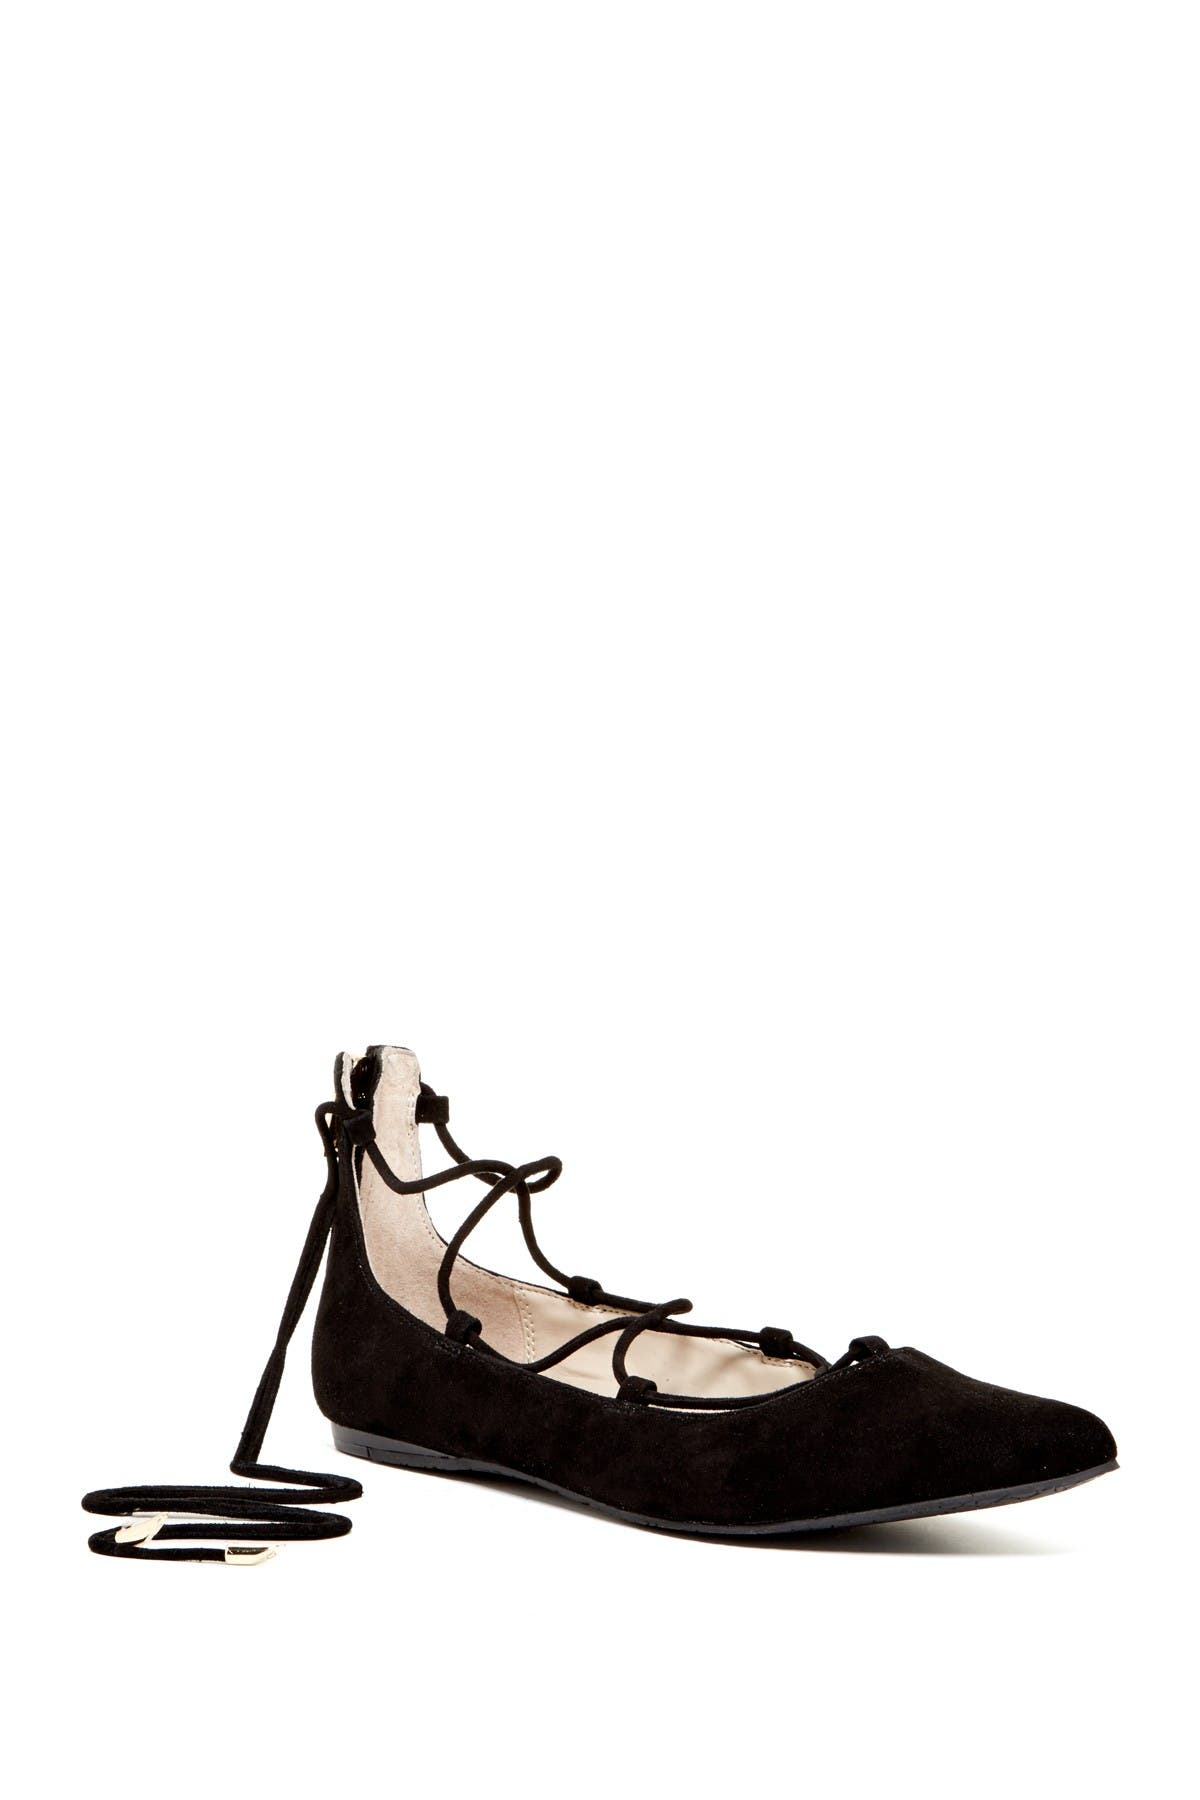 Image of Calvin Klein Harlin Suede Pointed Toe Lace-Up Flat